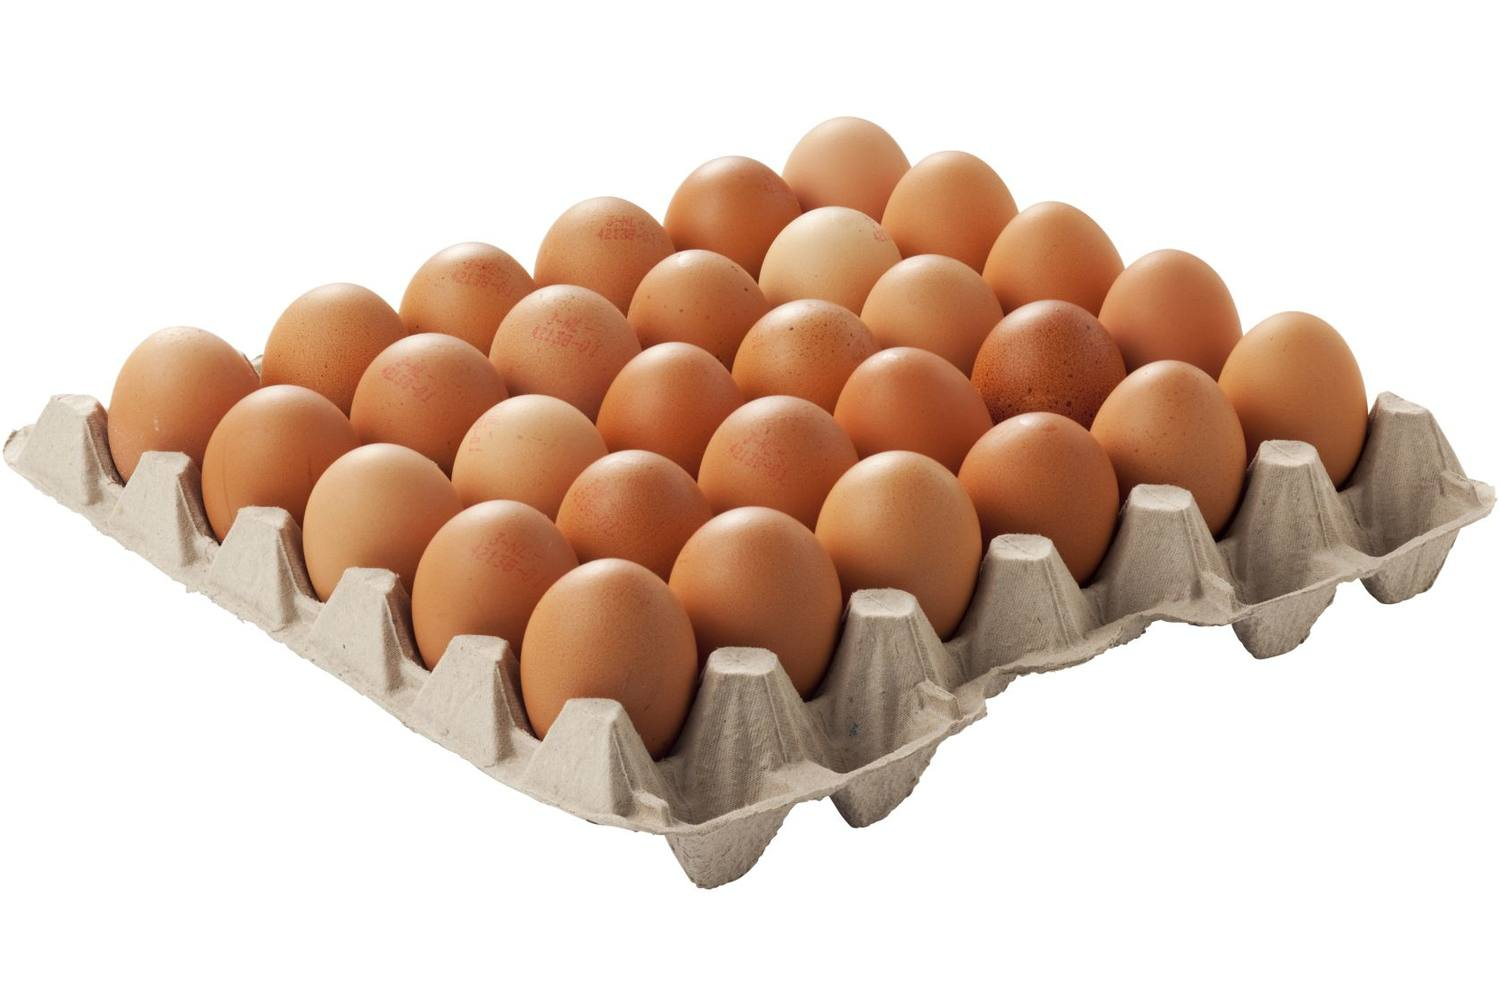 Free-range eggs box crade 90 pieces 1